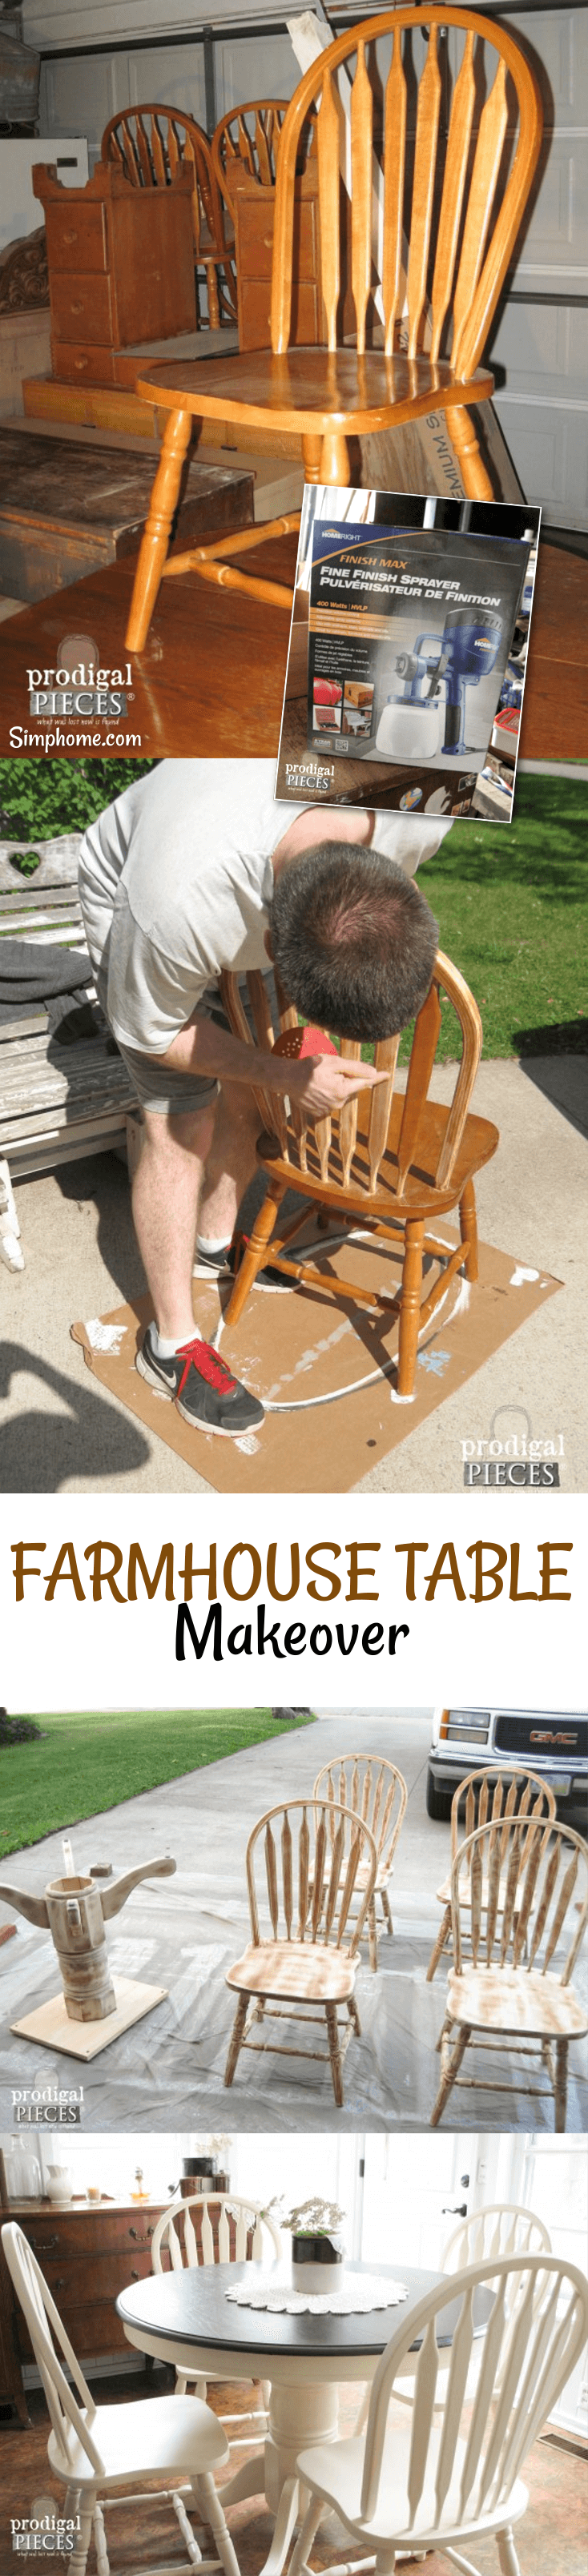 Farmhouse Table Makeover with HomeRight Sprayer 4 simphome com p